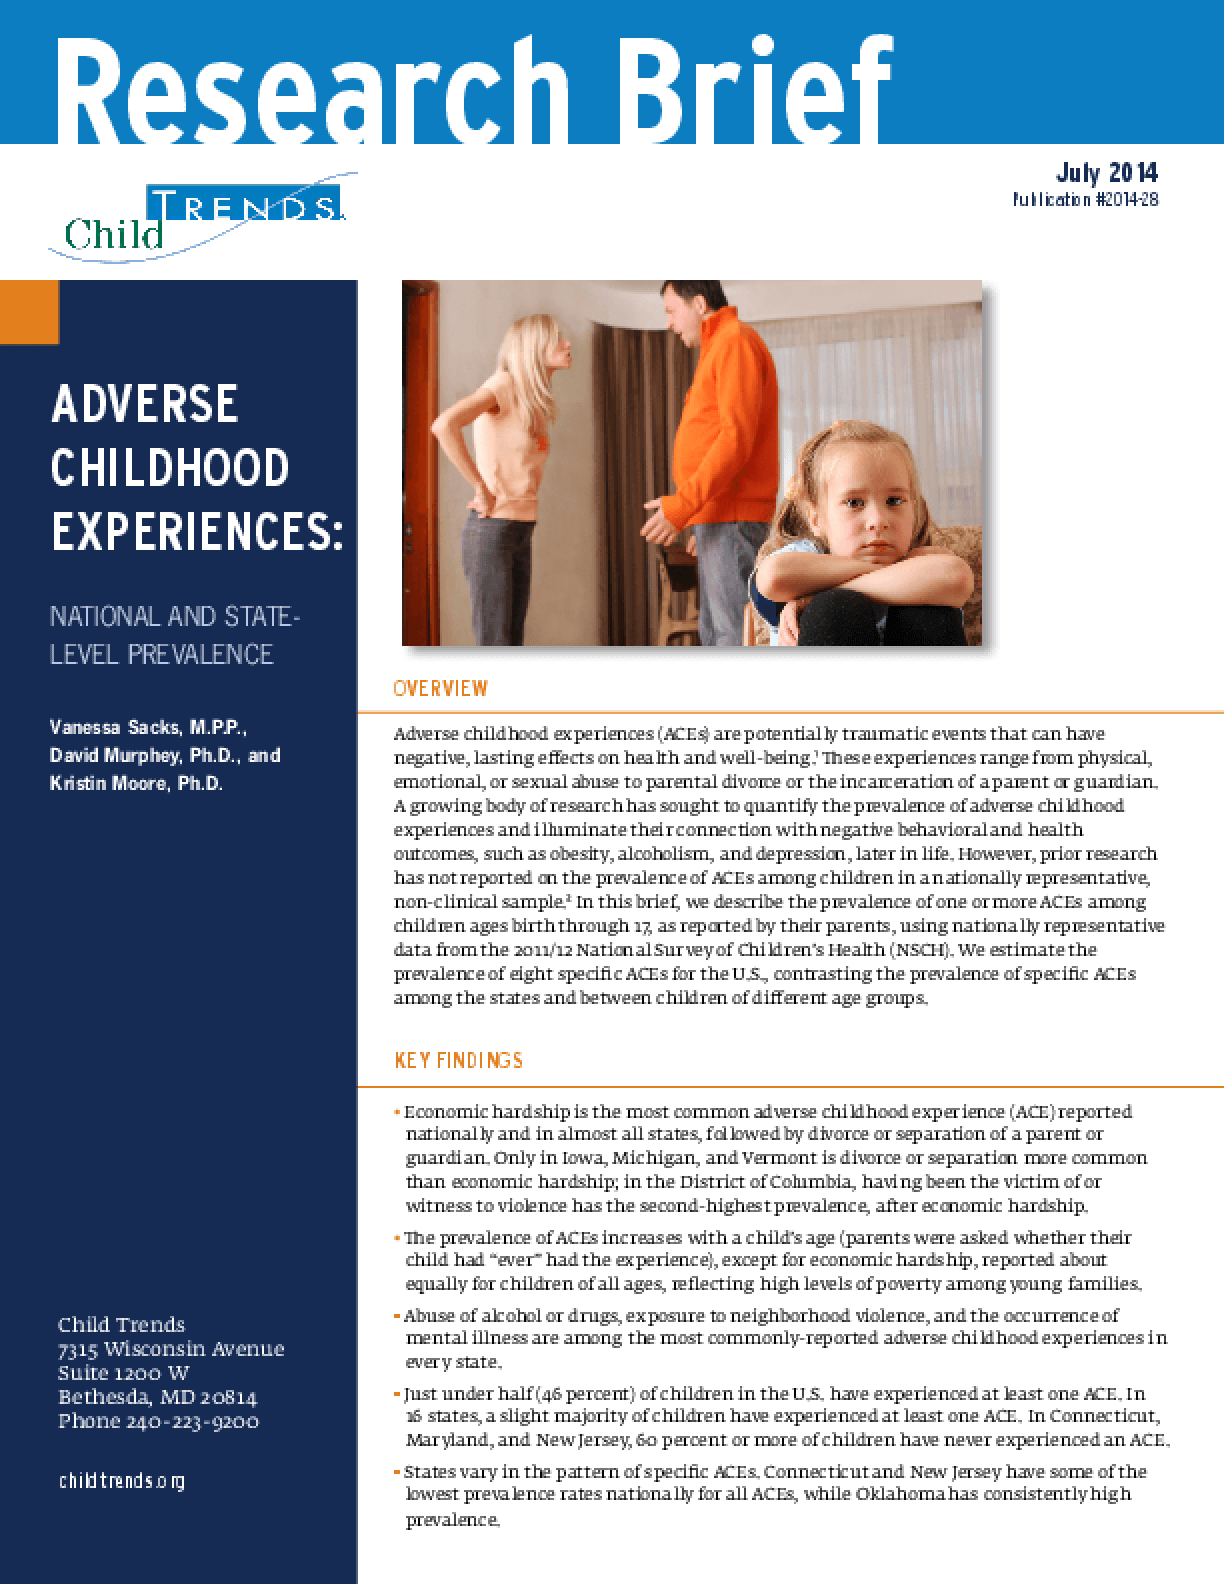 Adverse Childhood Experiences: National and State-Level Prevalence